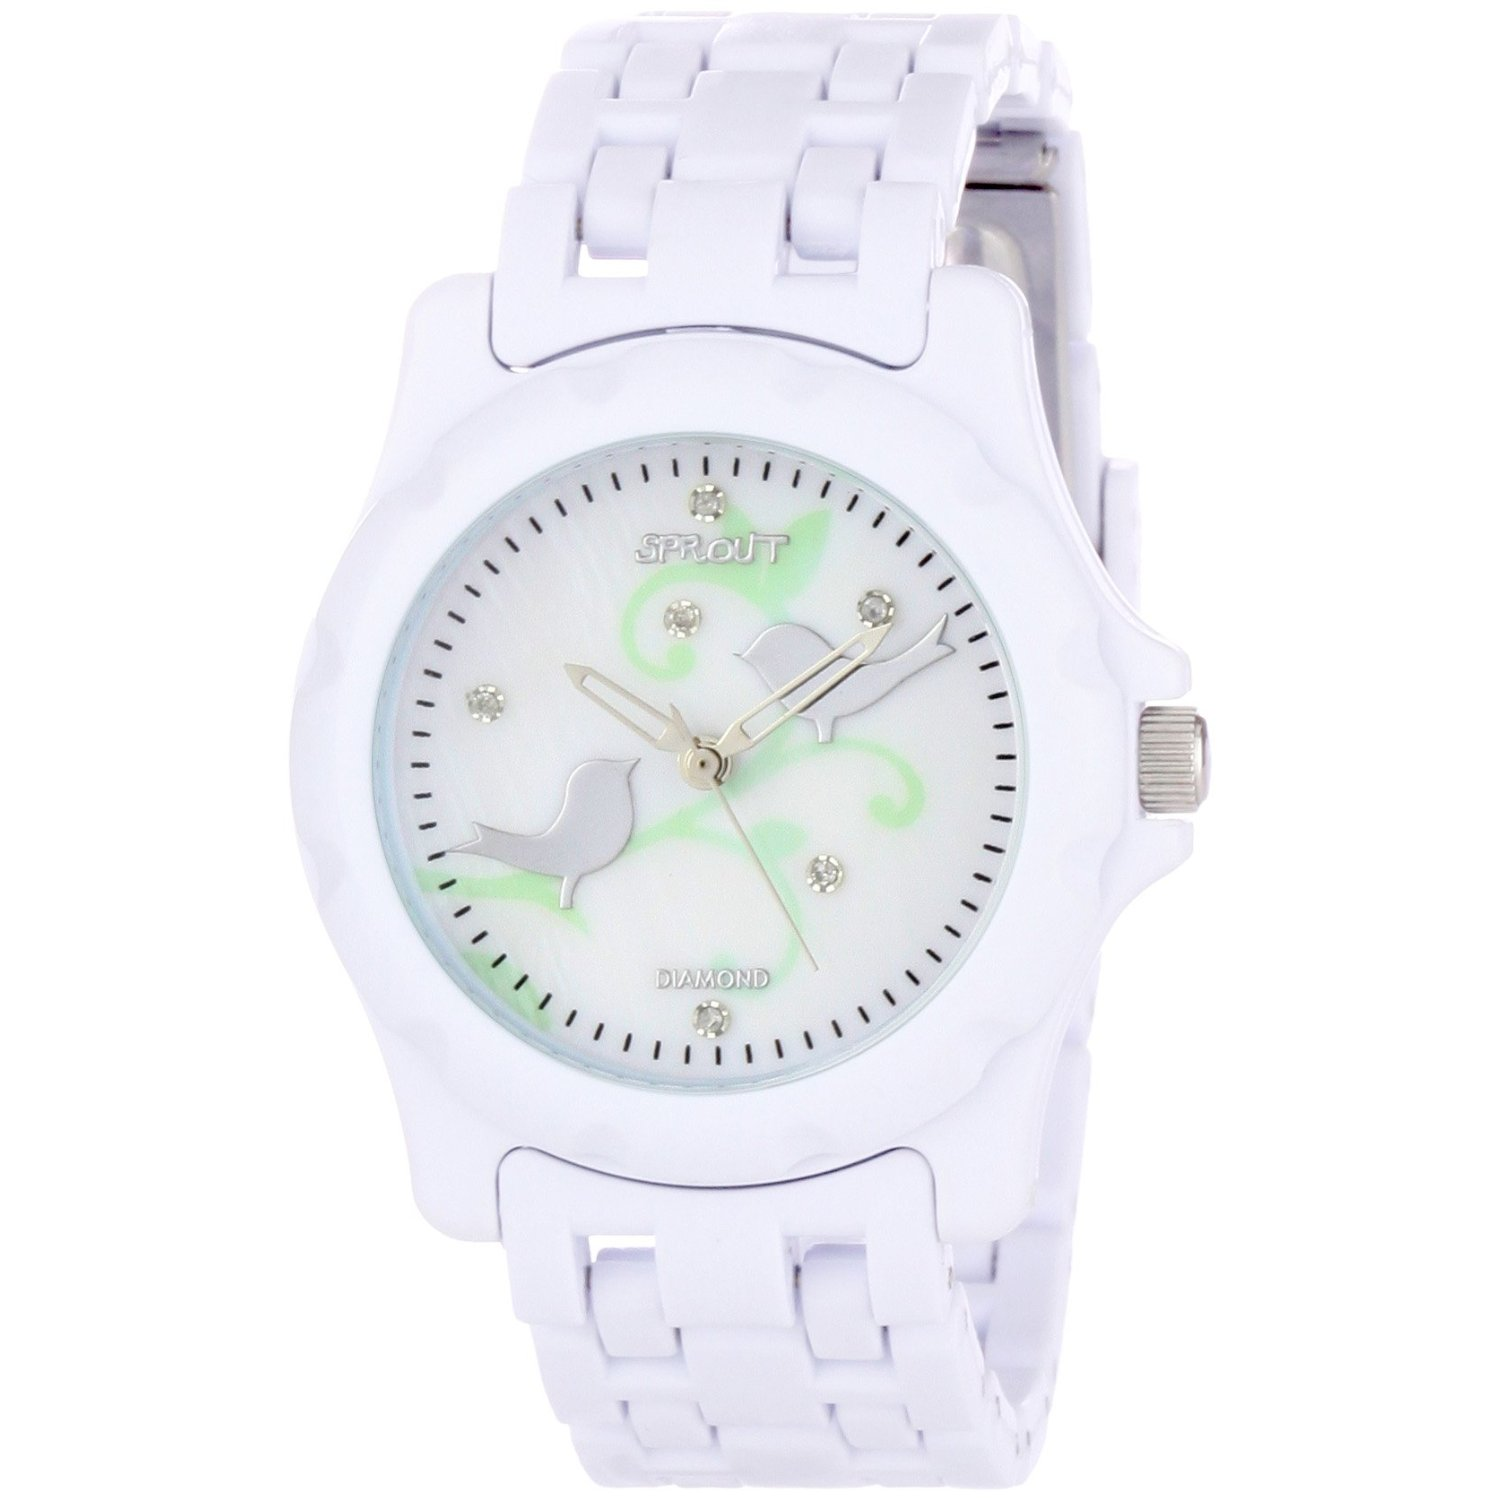 sprout eco friendly watch stuff i love blog shop